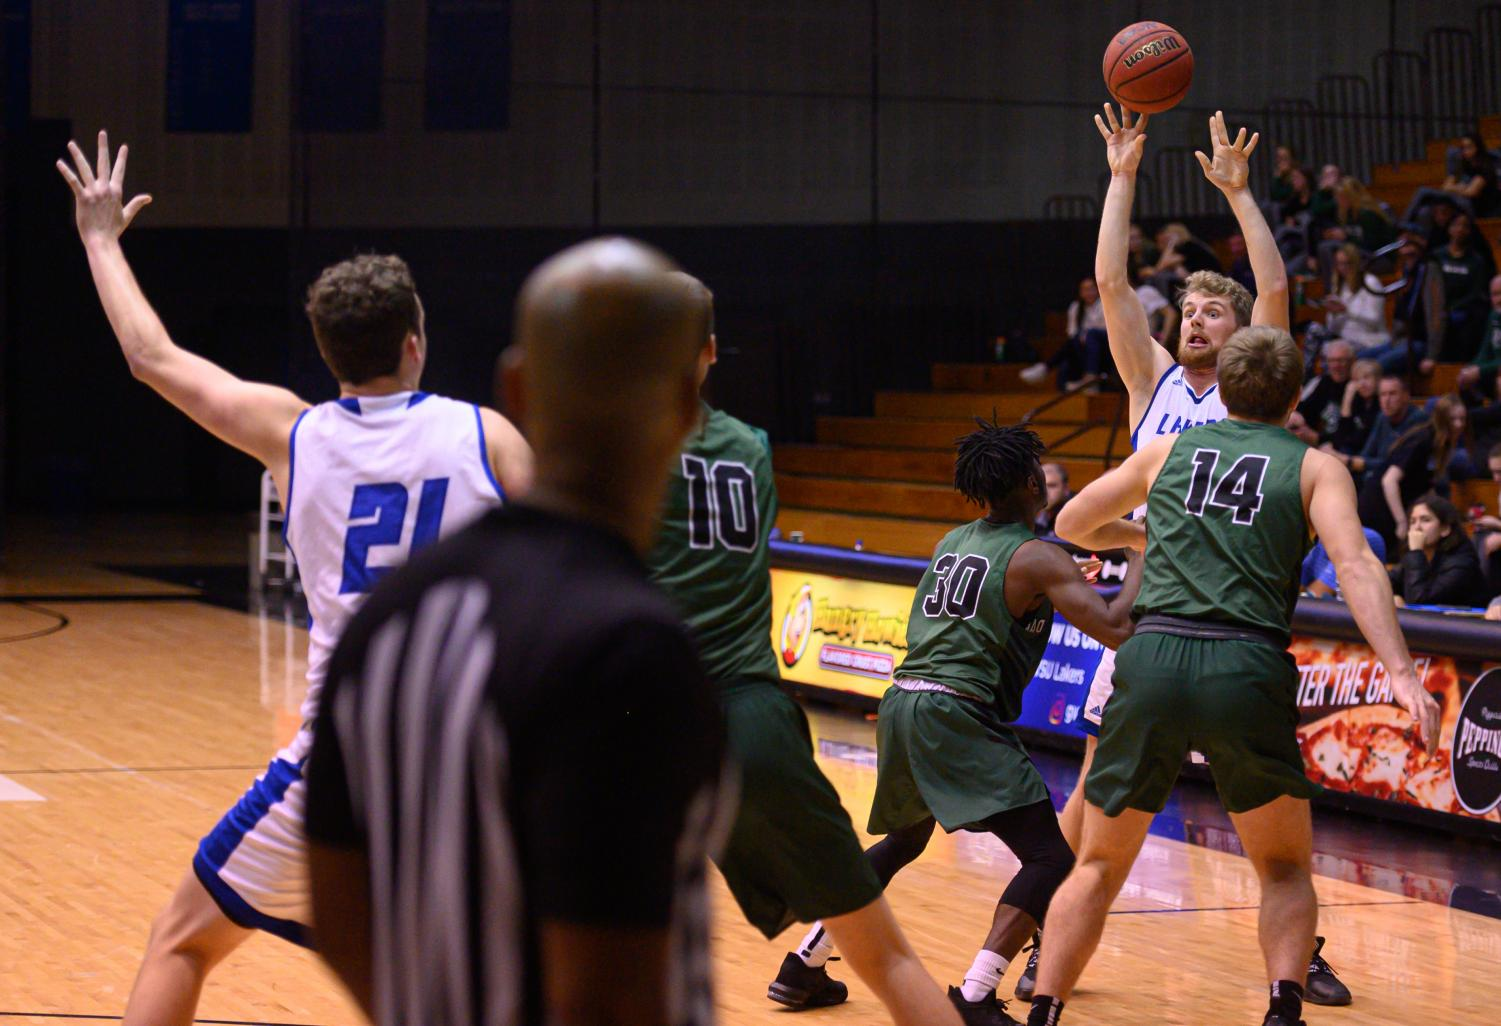 Senior  Ben Lubitz passes to freshman forward in the post in a game against Wisconsin Parkside. GVSU won the game, 73-47.